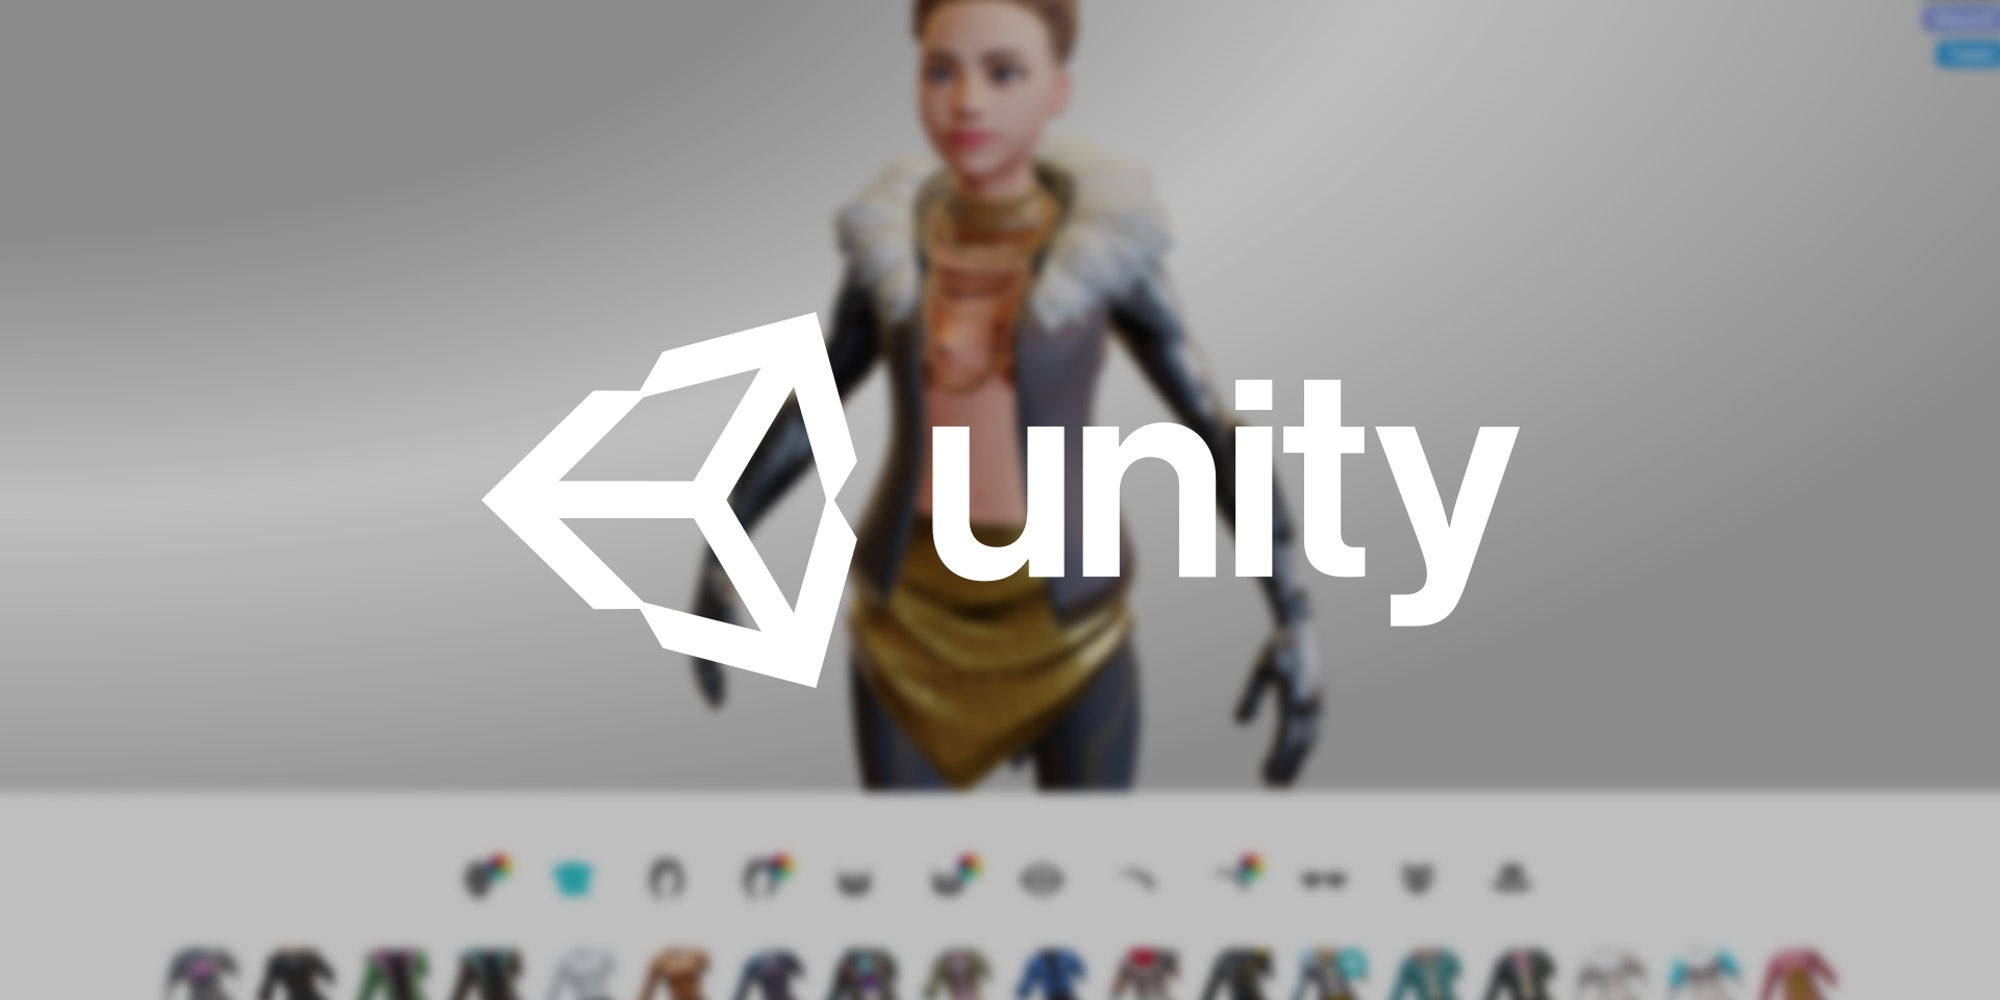 How to get started with the Ready Player Me Unity Avatar SDK